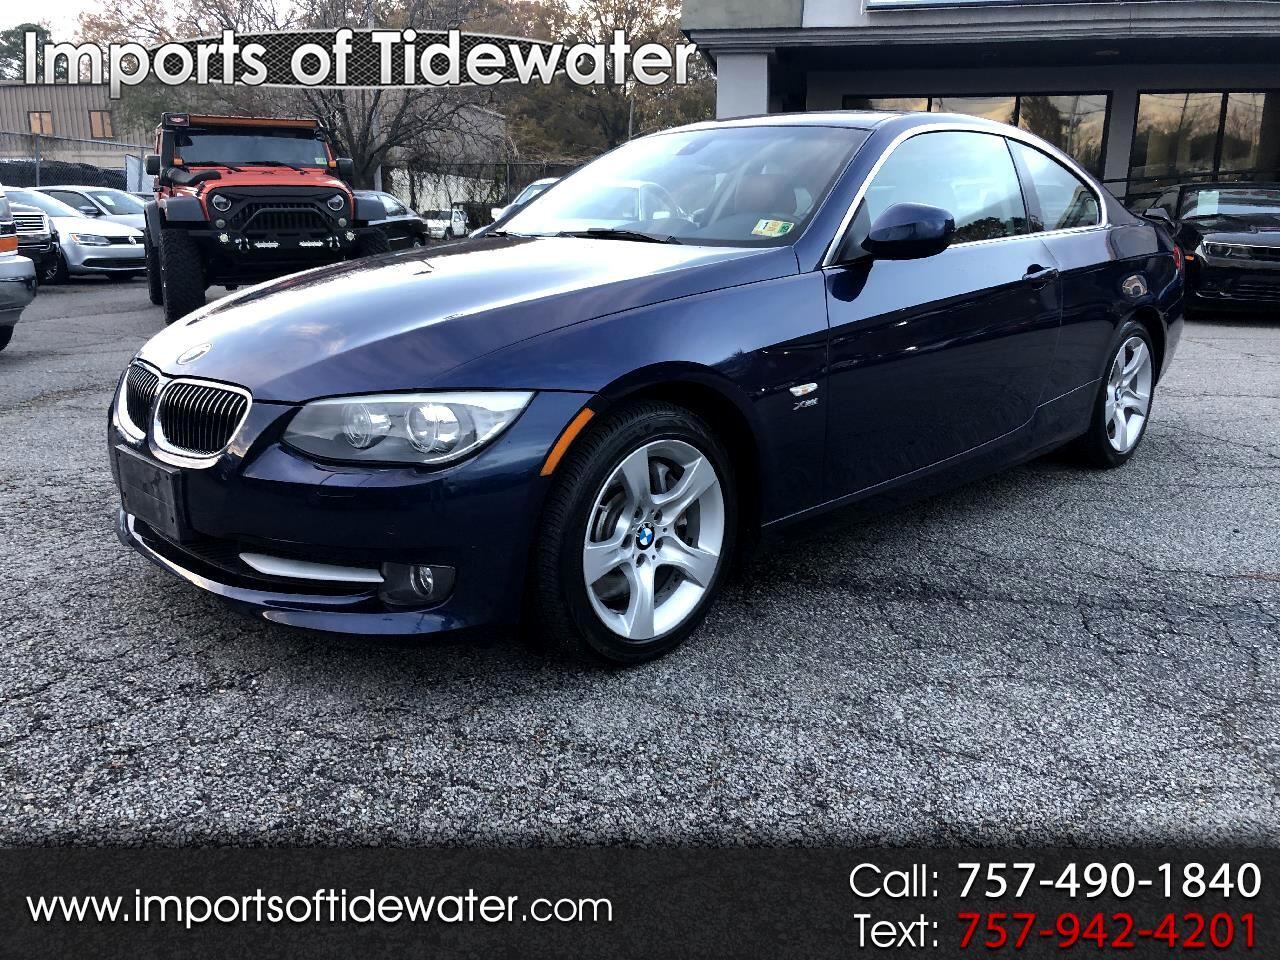 2011 BMW 3 Series 2dr Cpe 335i xDrive AWD